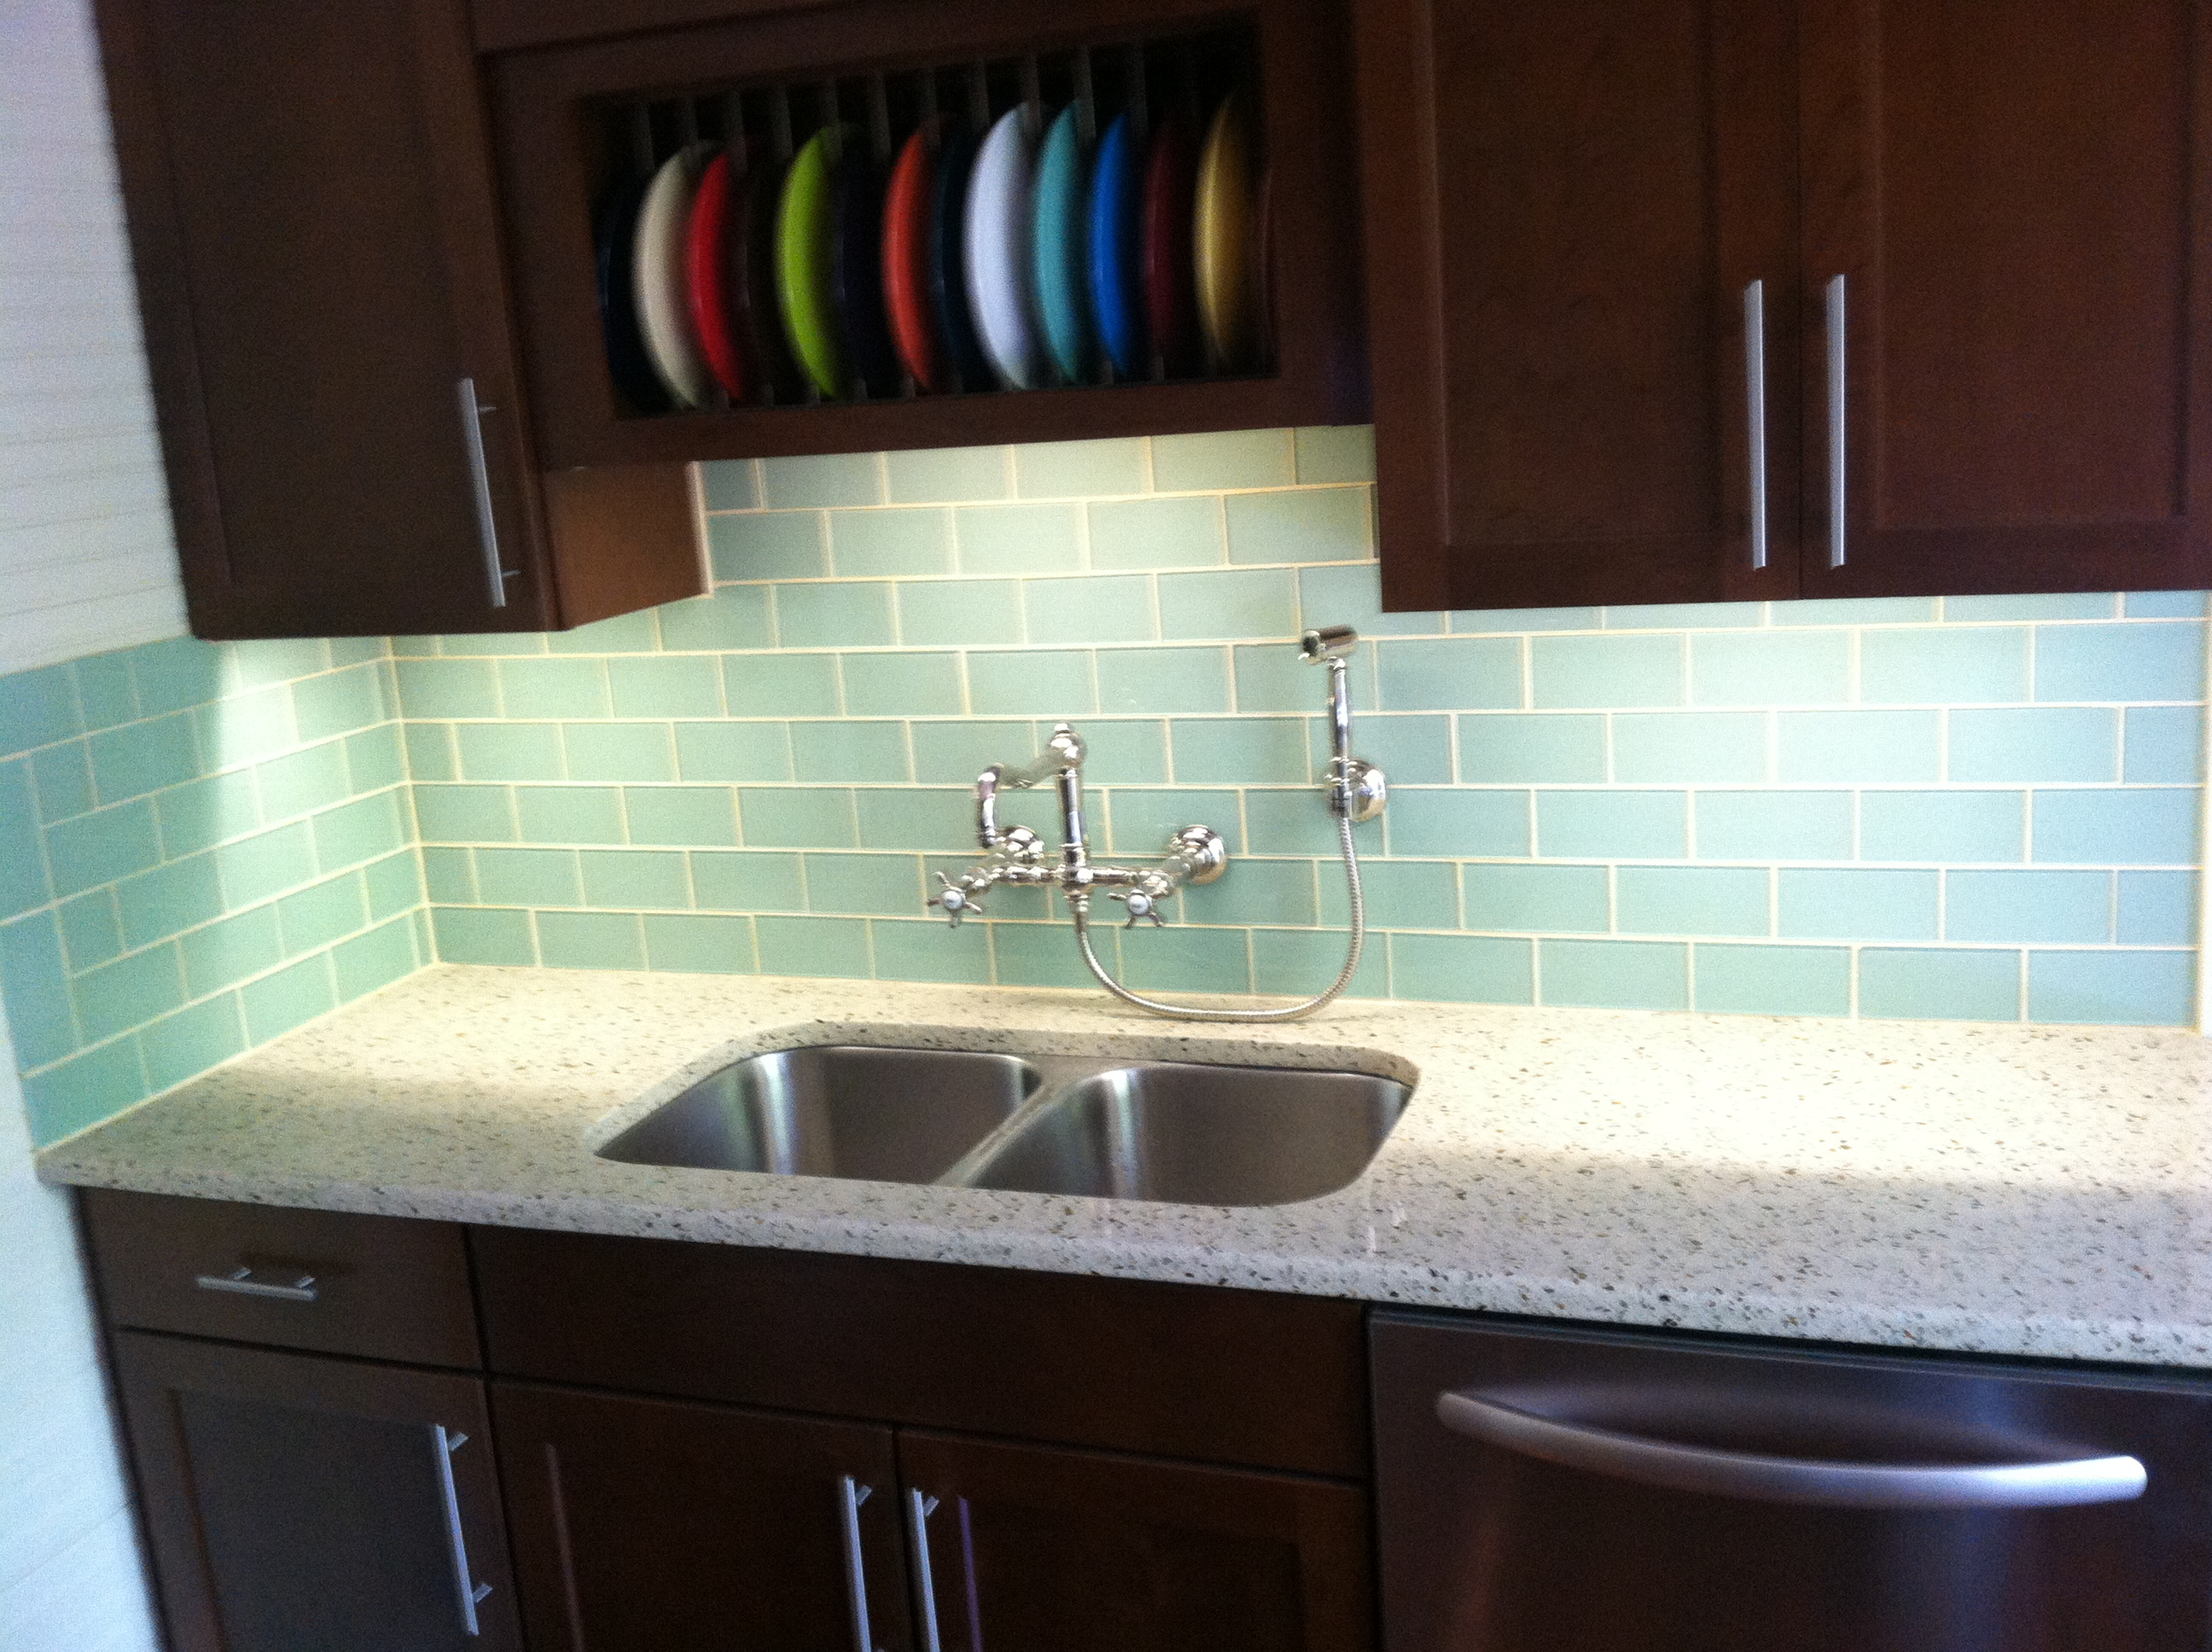 Ordinaire Install Bright Under The Cabinet Lights Above Appealing Glass Tile  Backsplash For Contemporary Kitchen